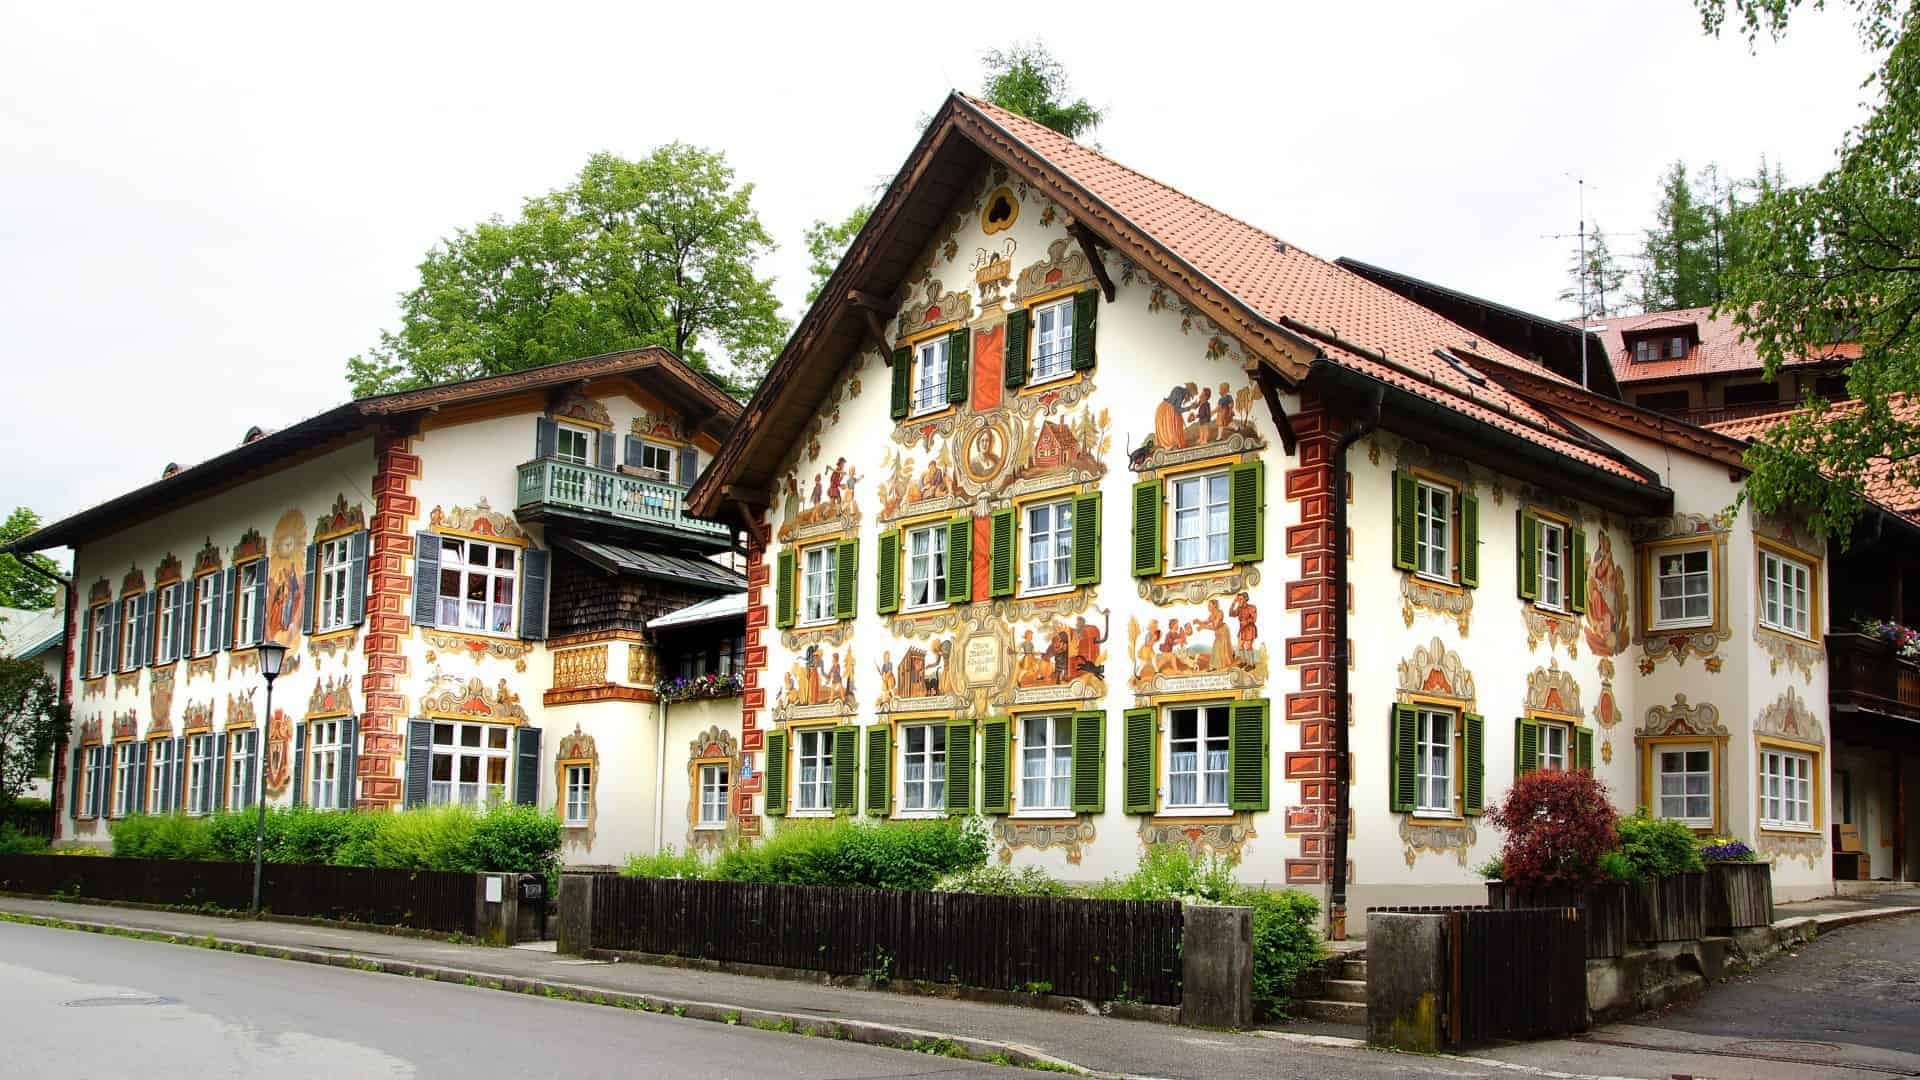 A fairy tale house, patterned with a detailed fresco, in Oberammergau